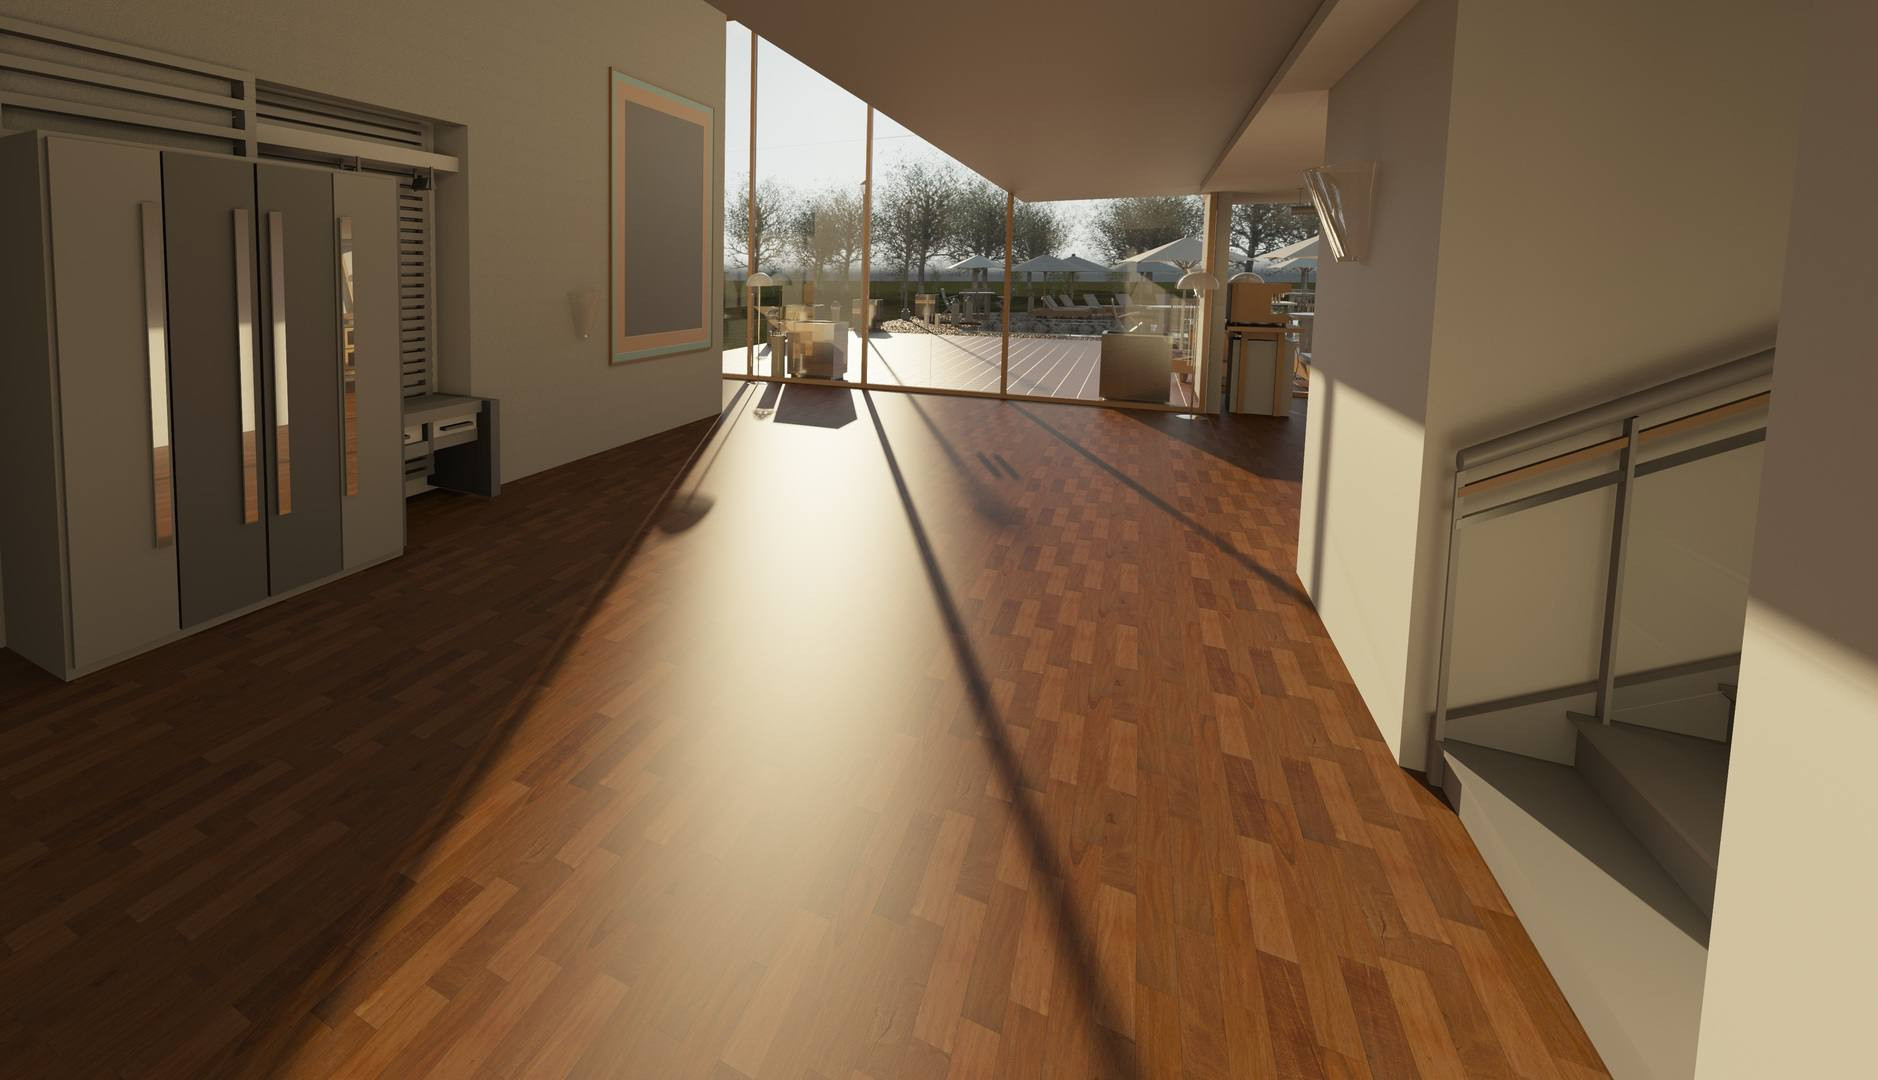 direction to install hardwood floors of common flooring types currently used in renovation and building in architecture wood house floor interior window 917178 pxhere com 5ba27a2cc9e77c00503b27b9